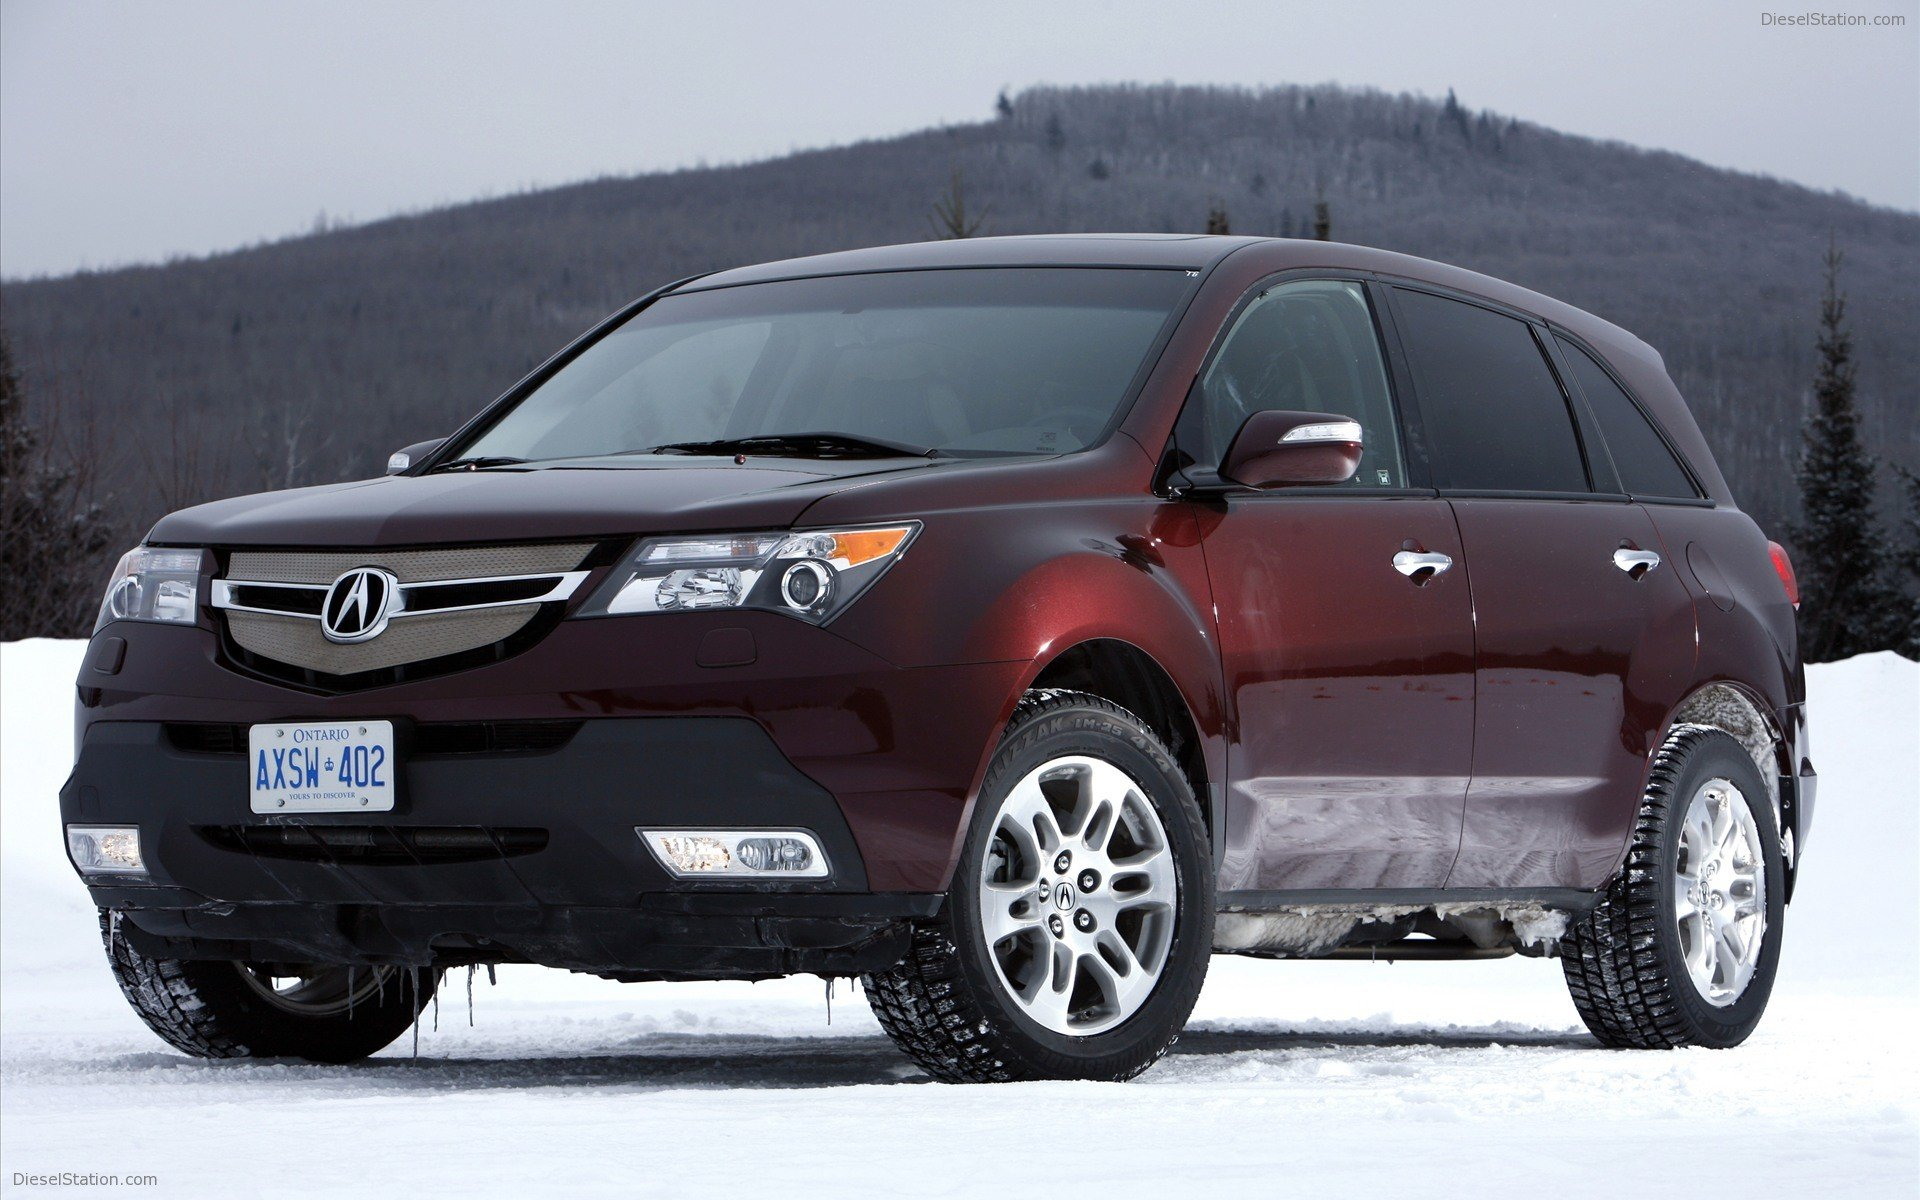 acura announces news pricing mdx auto for